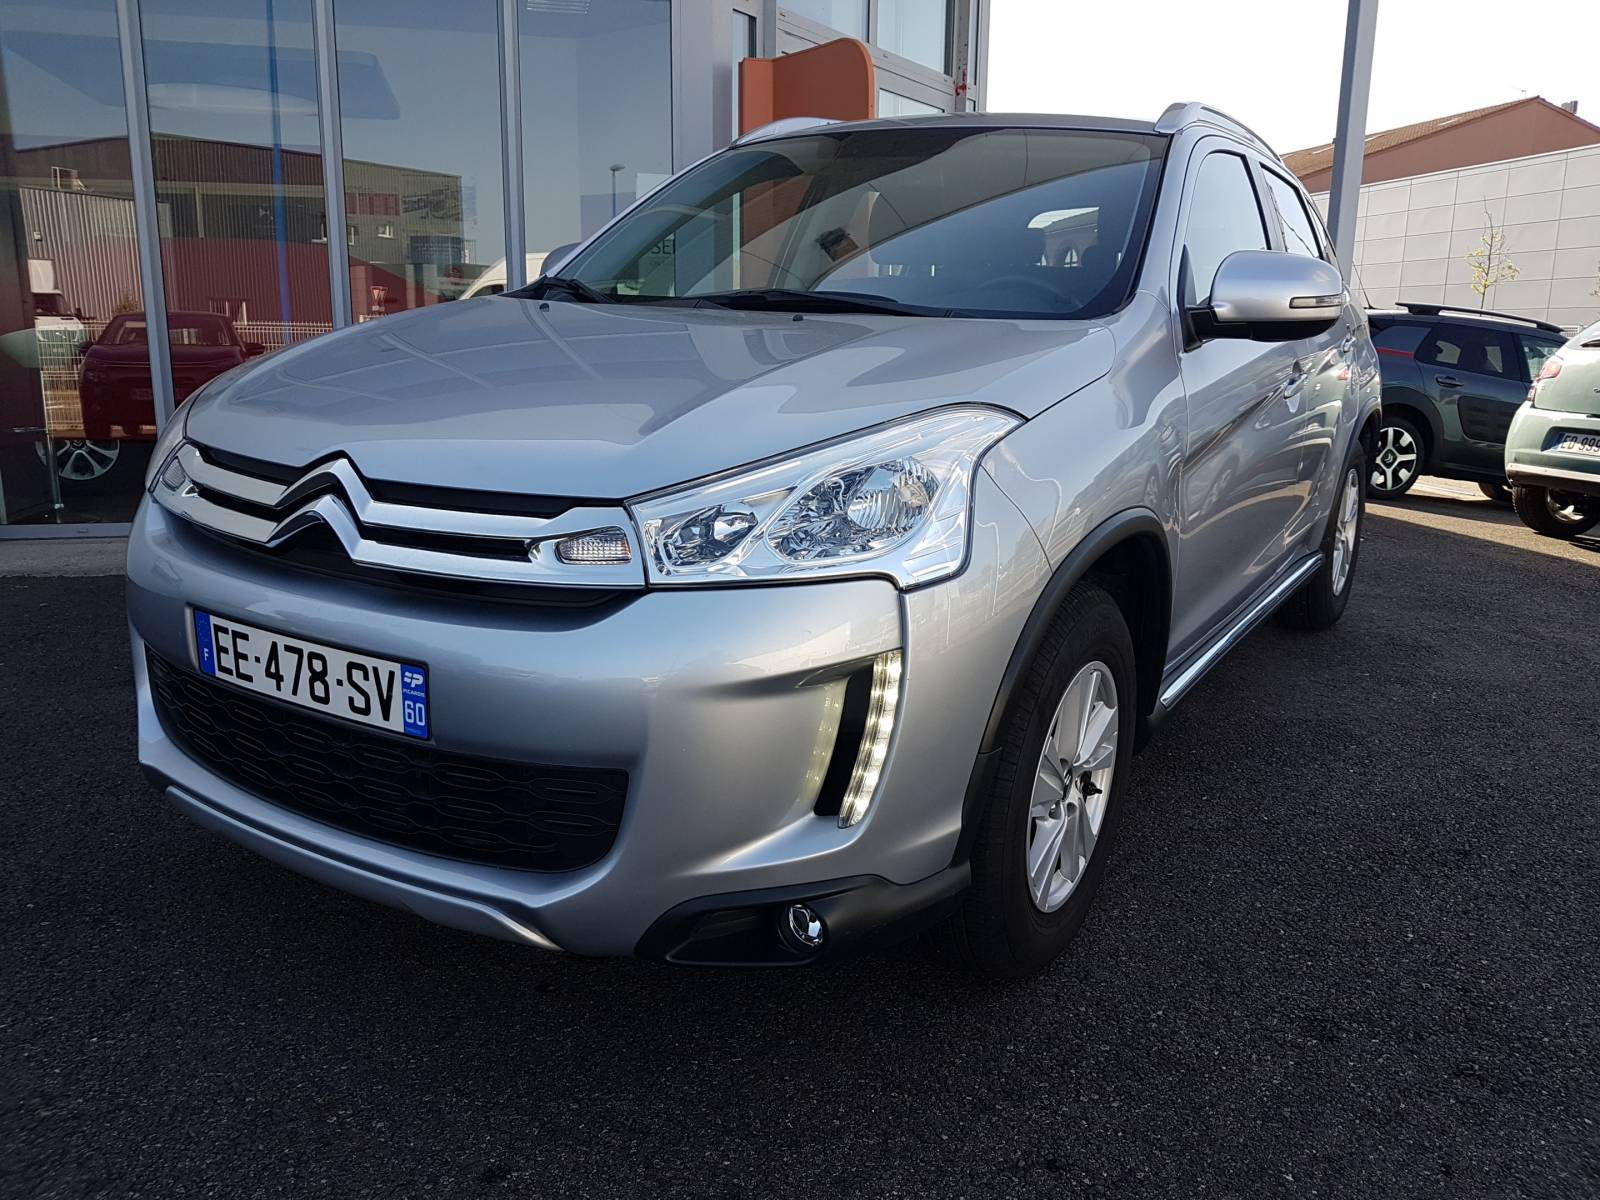 C4 aircross 1 6 e hdi115 4x2 feel edition launaguet - Garage avenue des etats unis toulouse ...